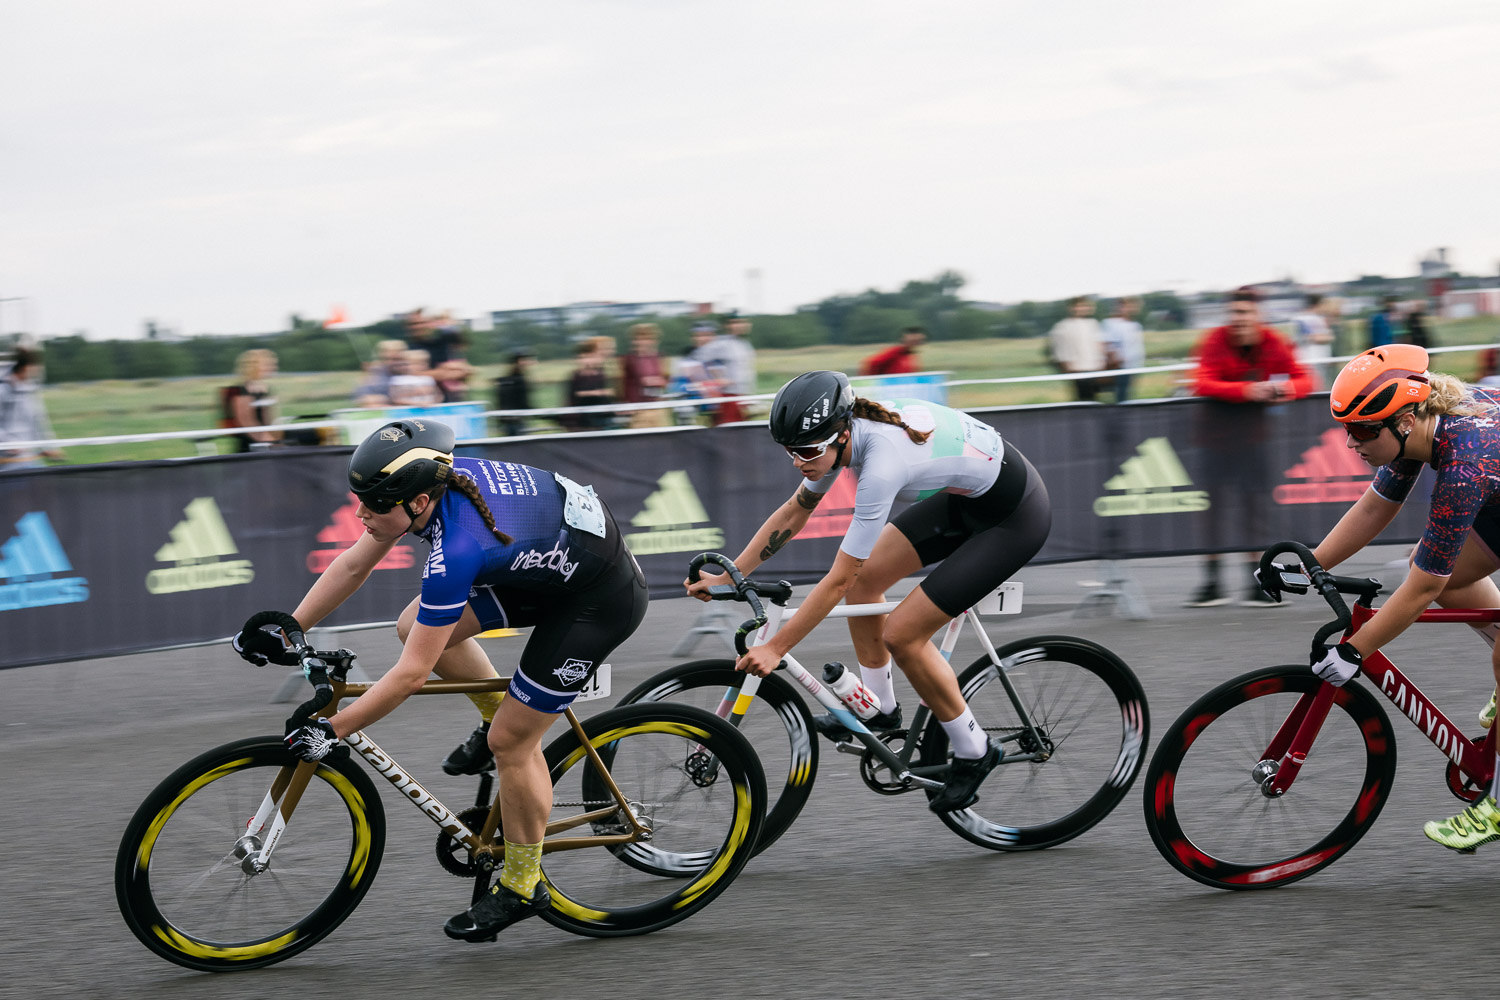 8bar-crit-fixed-gear-bike-race-stefanhaehnel-wmn-fxd-final-29